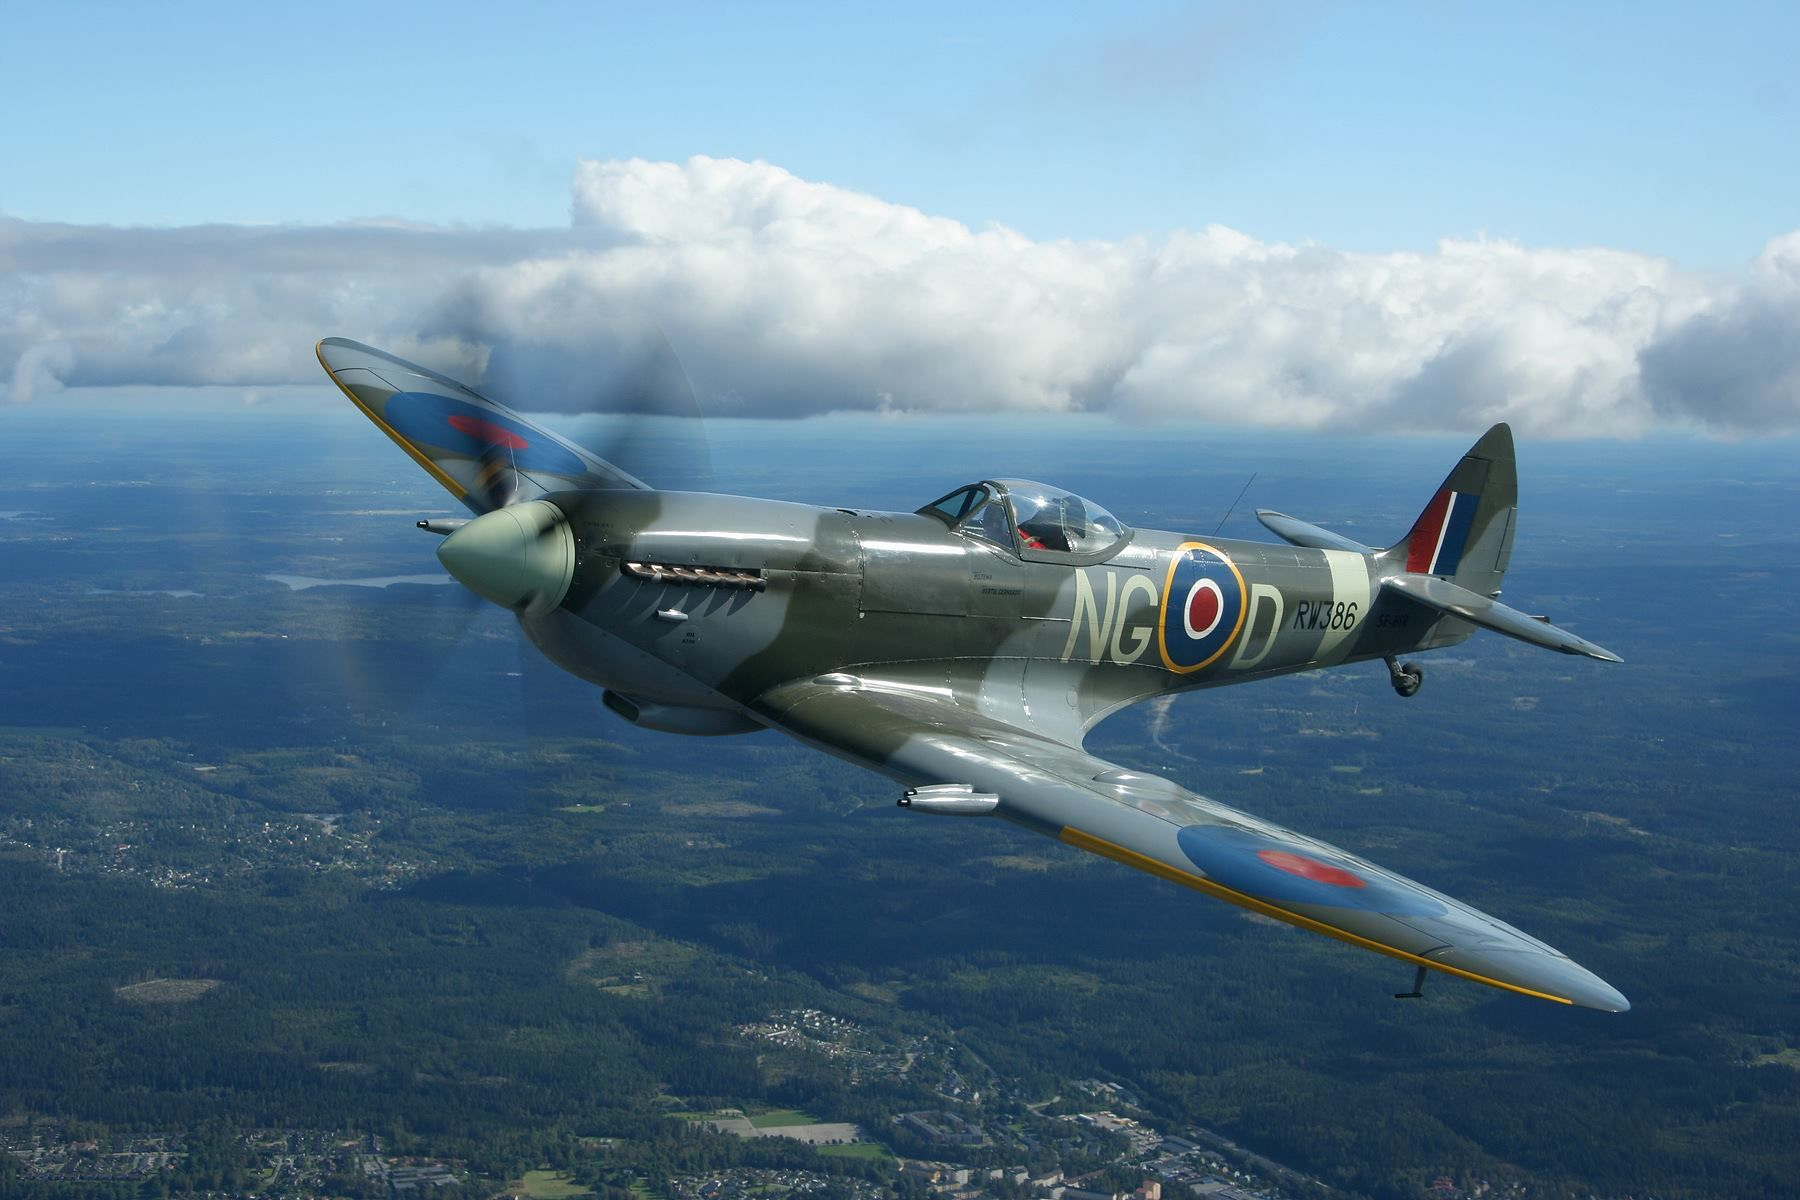 The Supermarine Spitfire Mk. 9